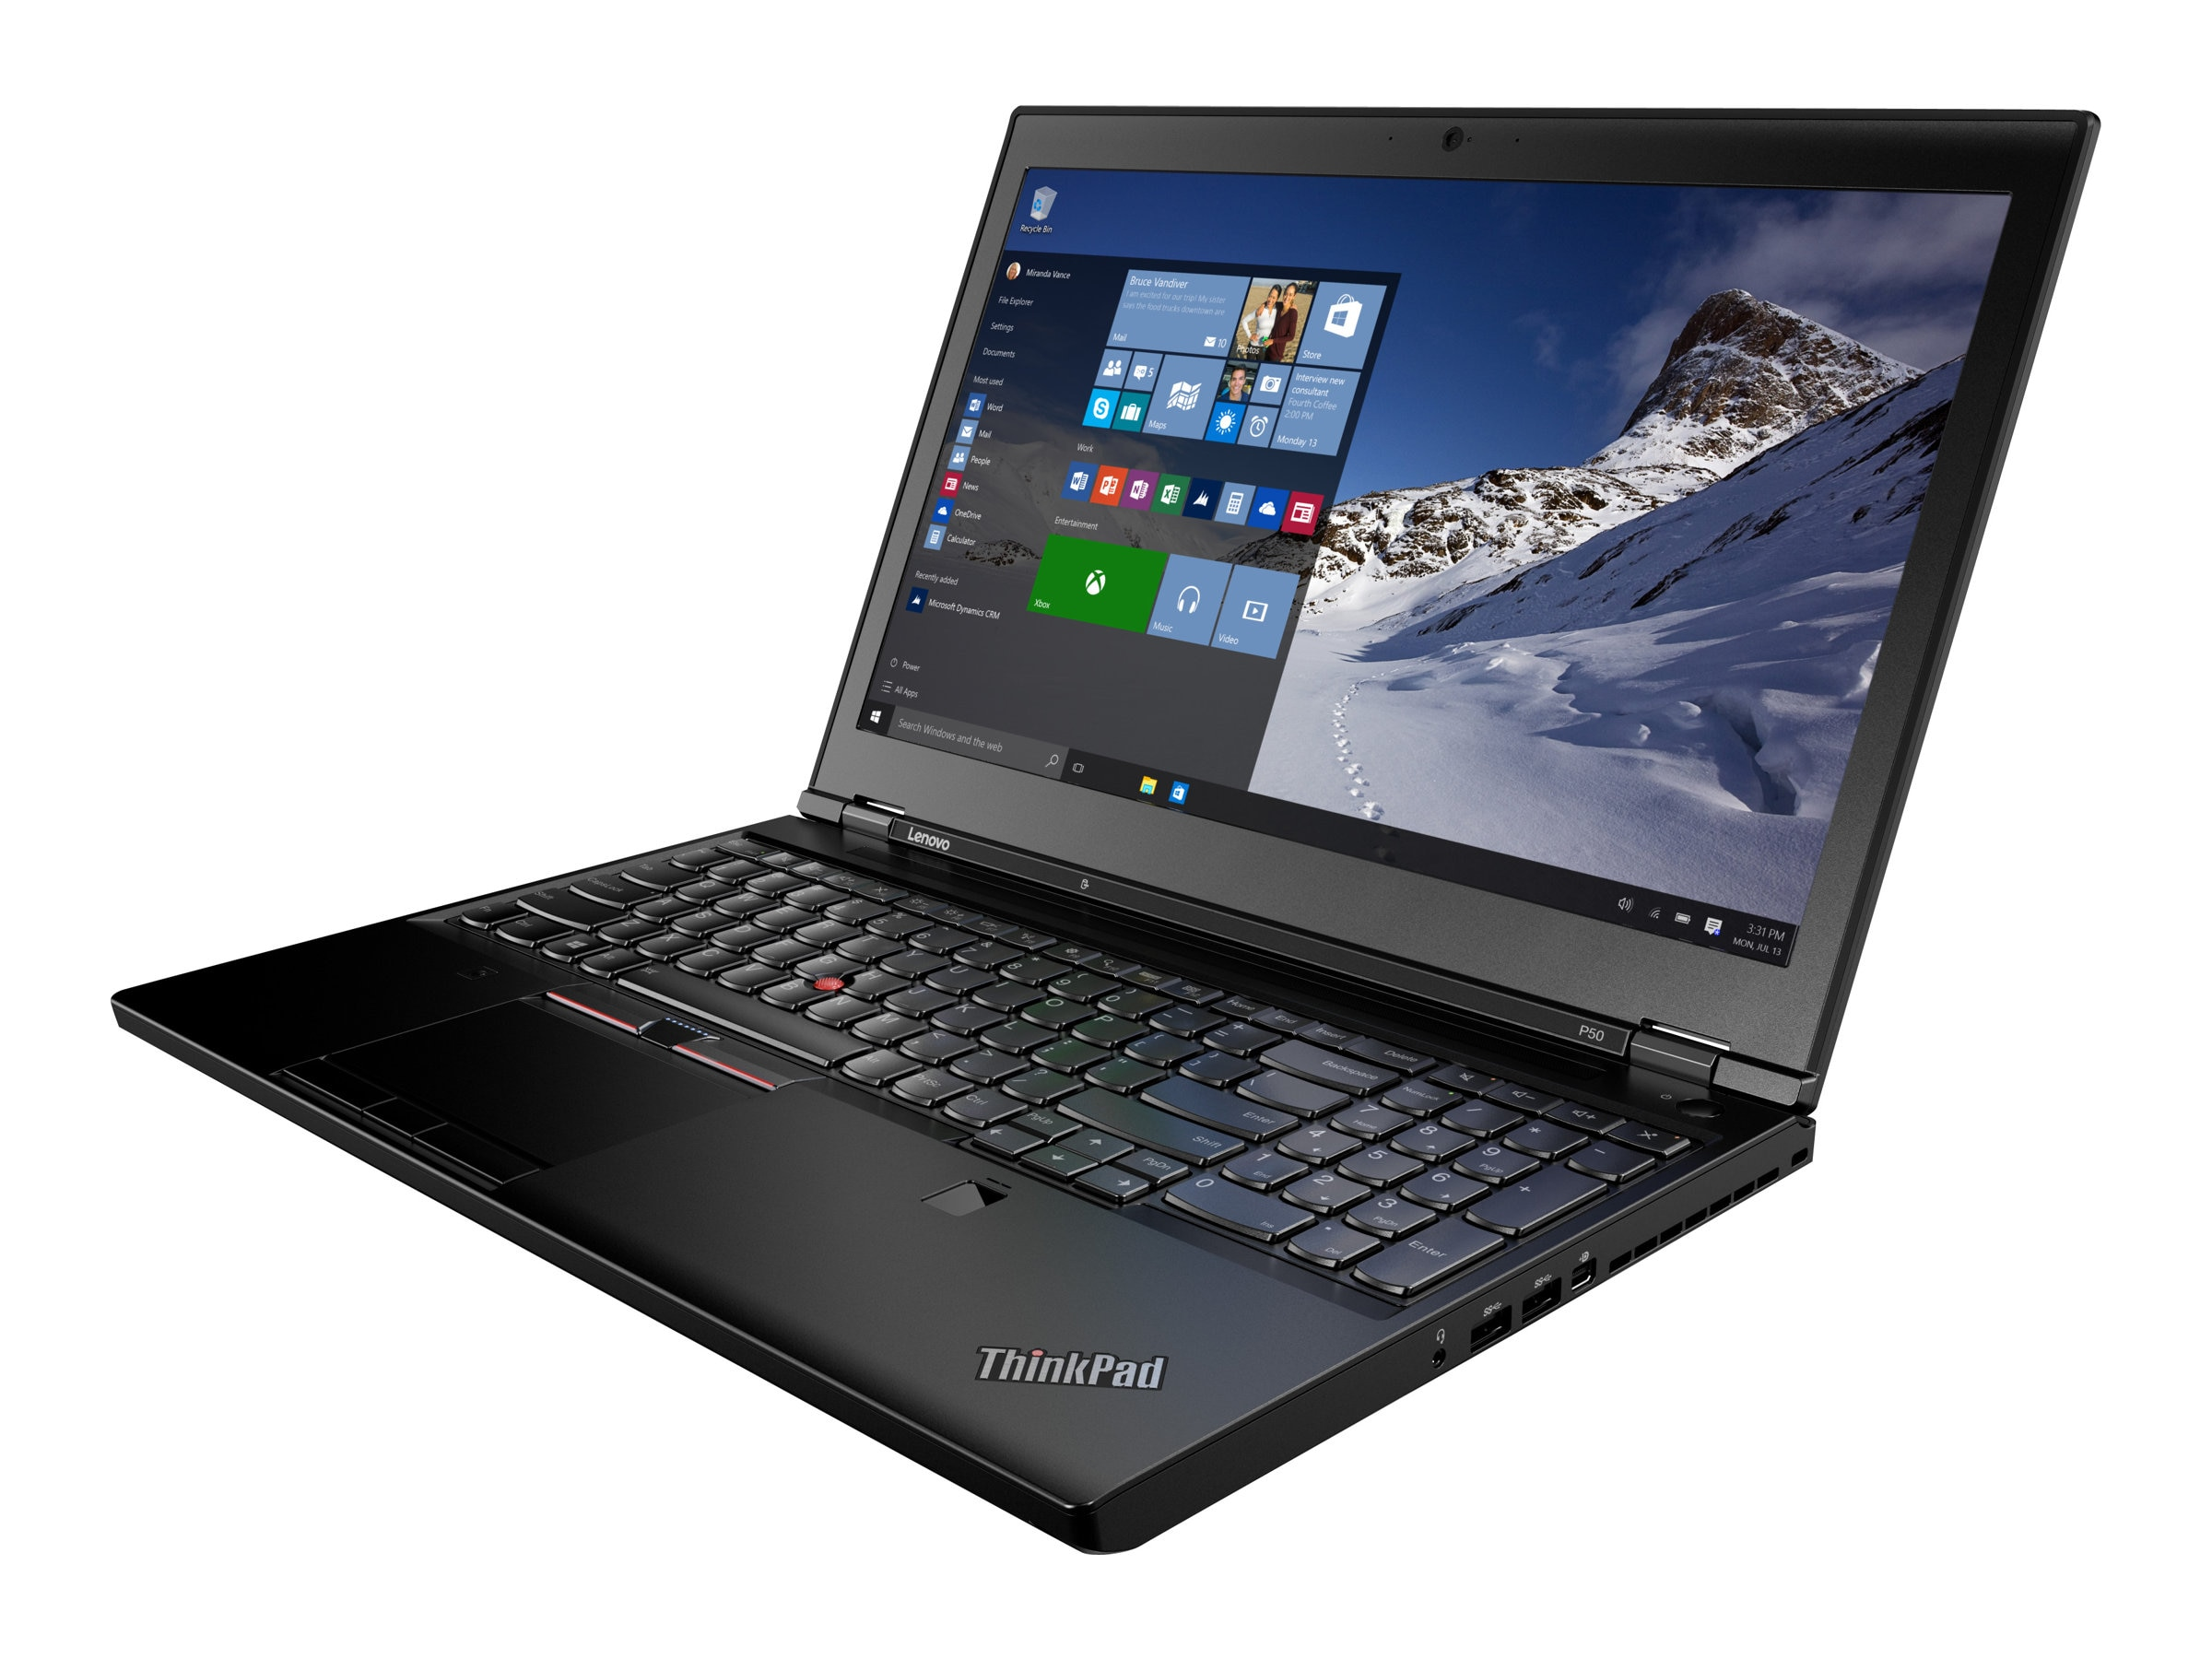 Lenovo TopSeller ThinkPad P50 Core i7-6700HQ 2.6GHz 8GB 500GB ac BT FR WC XRite 6C 15.6 FHD MT W10P64